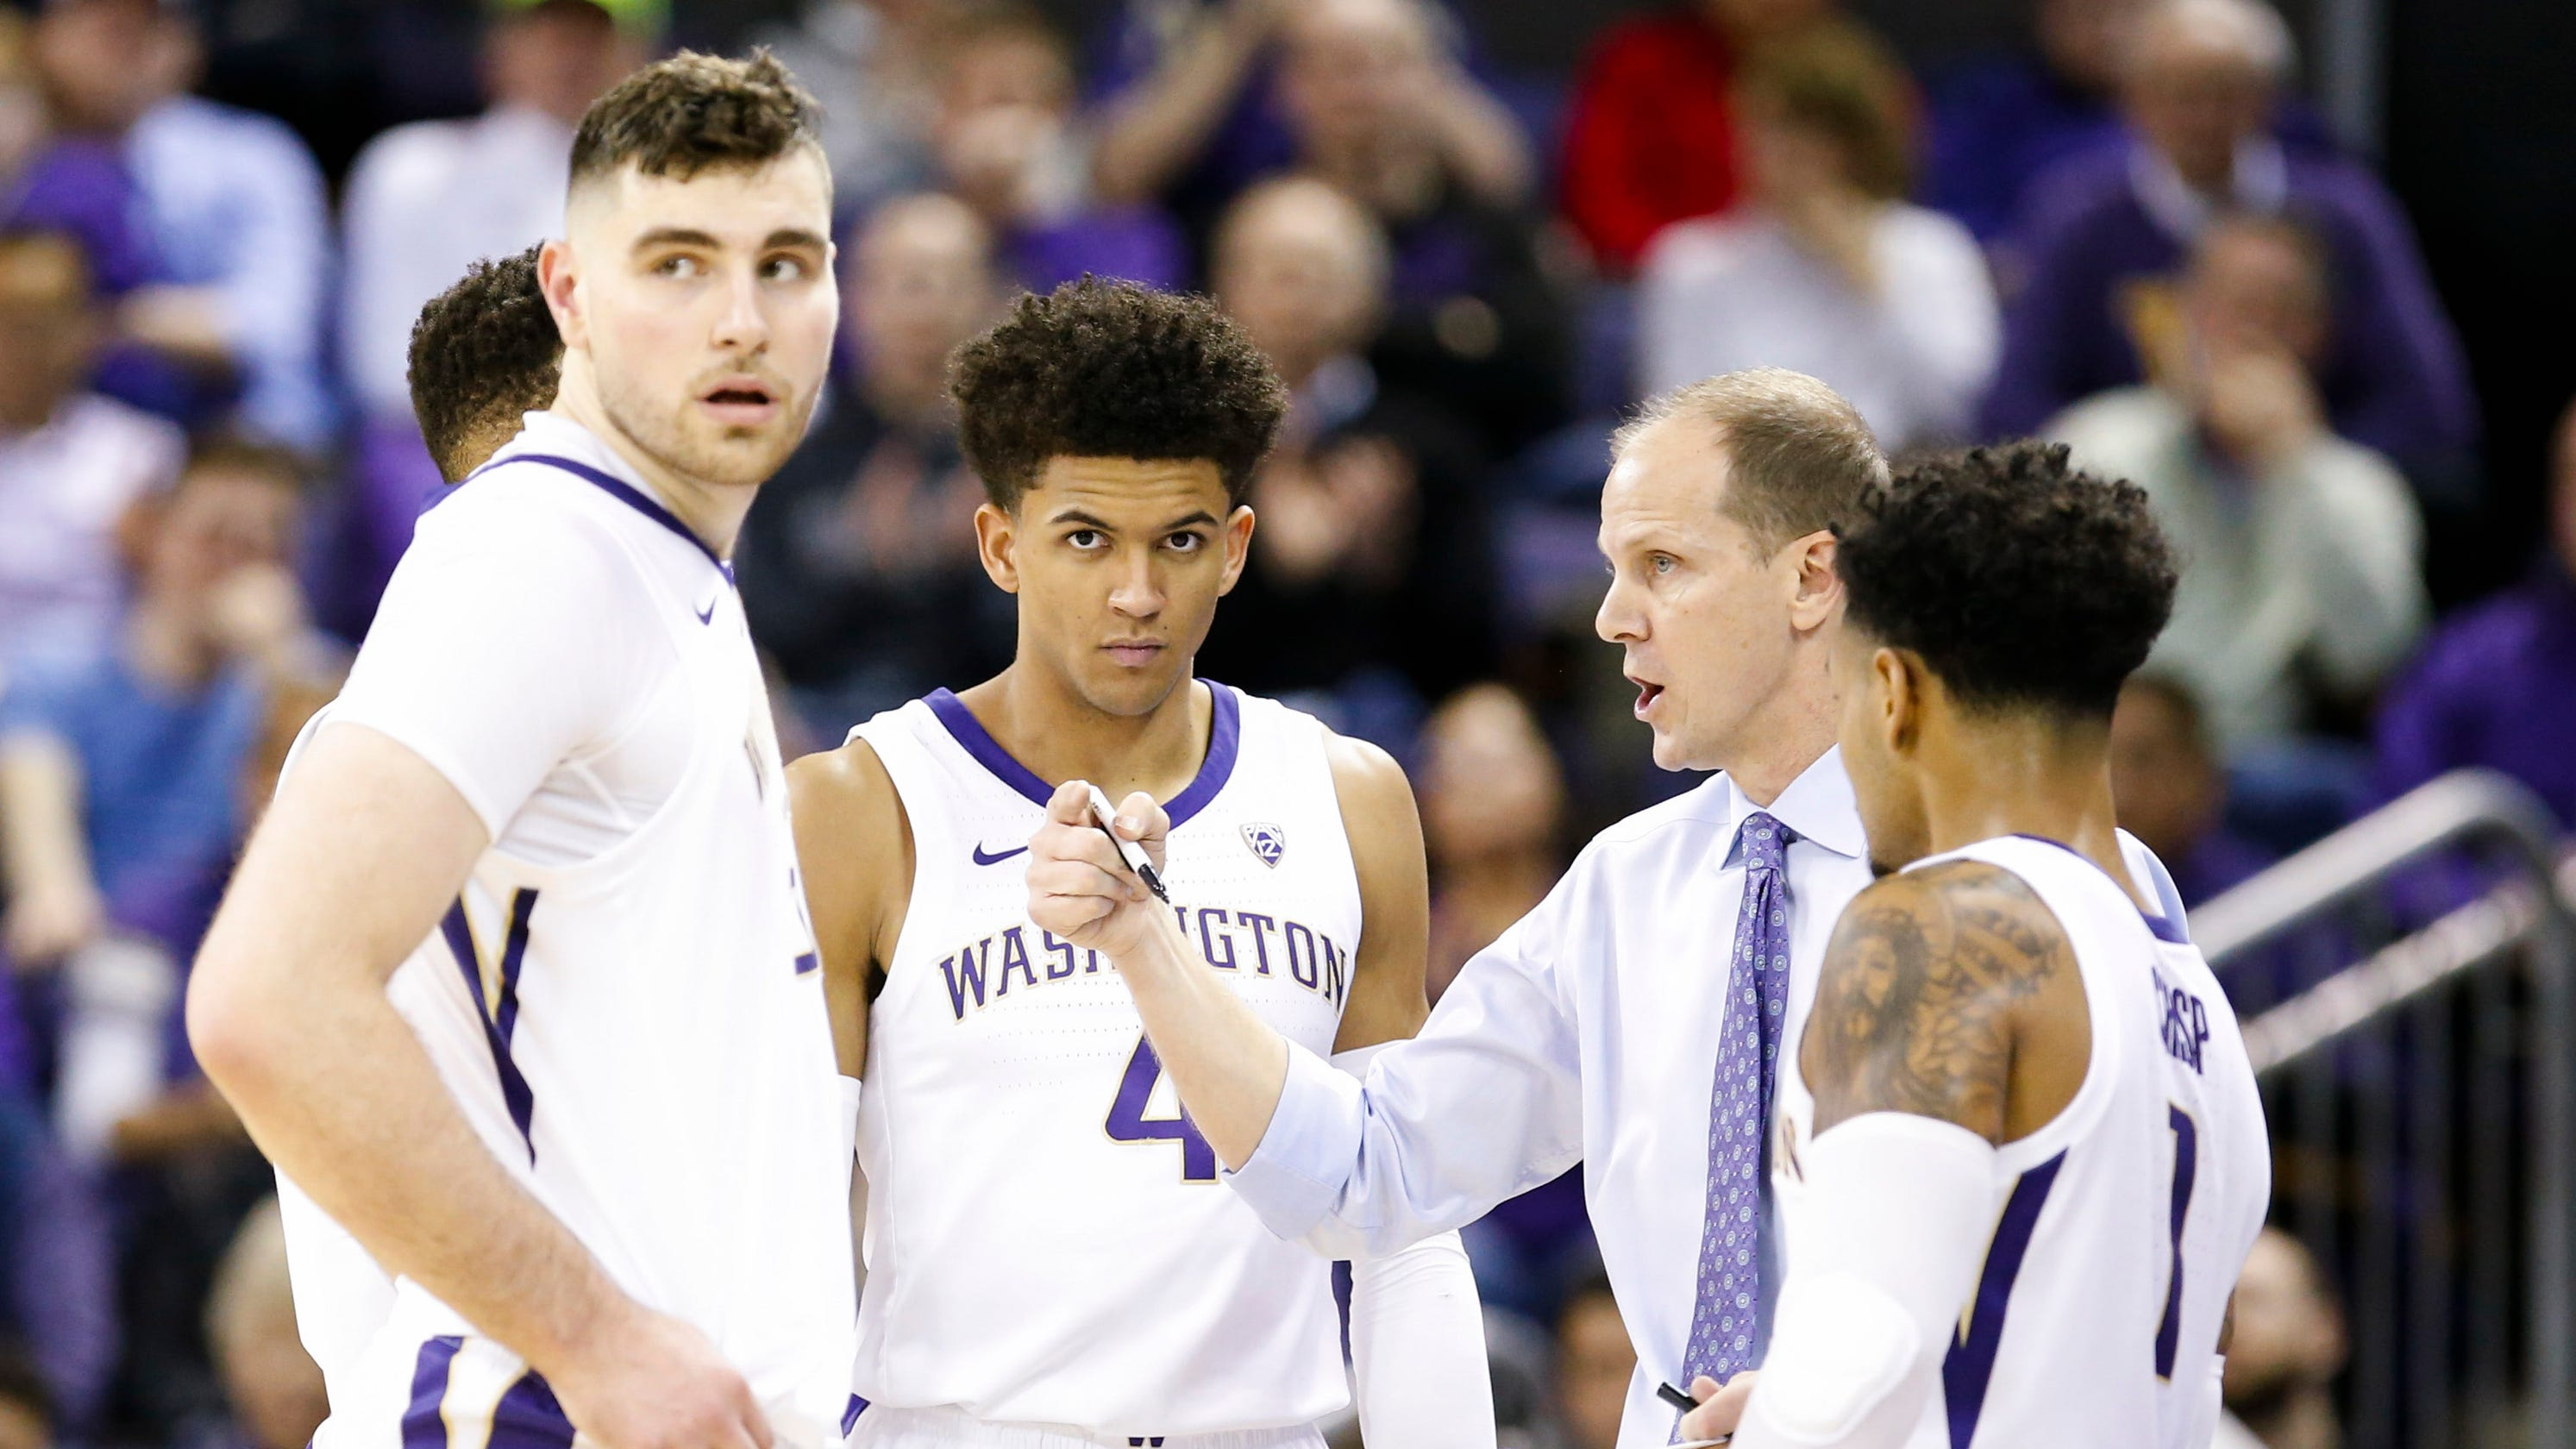 NCAA tournament bracketology: The Pac-12 is horrid, and the selection committee will notice